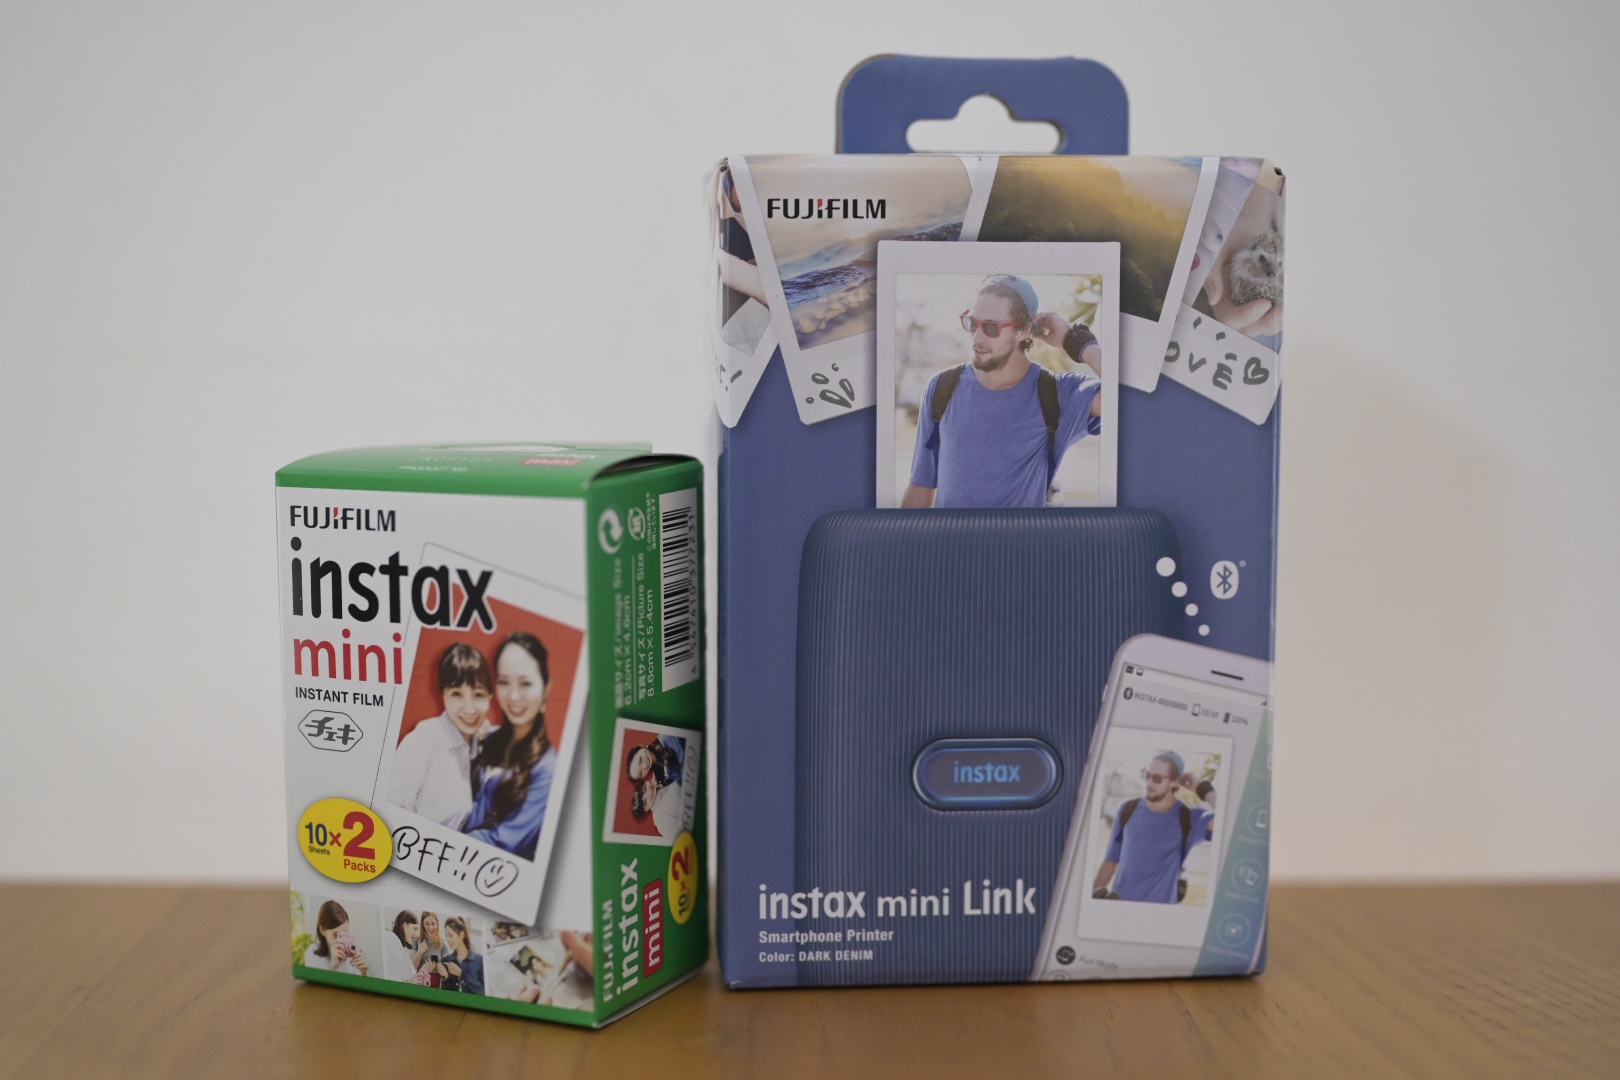 instax-mini-link-fujifilm-impressions-after-a-week-of-use-good-buy-1